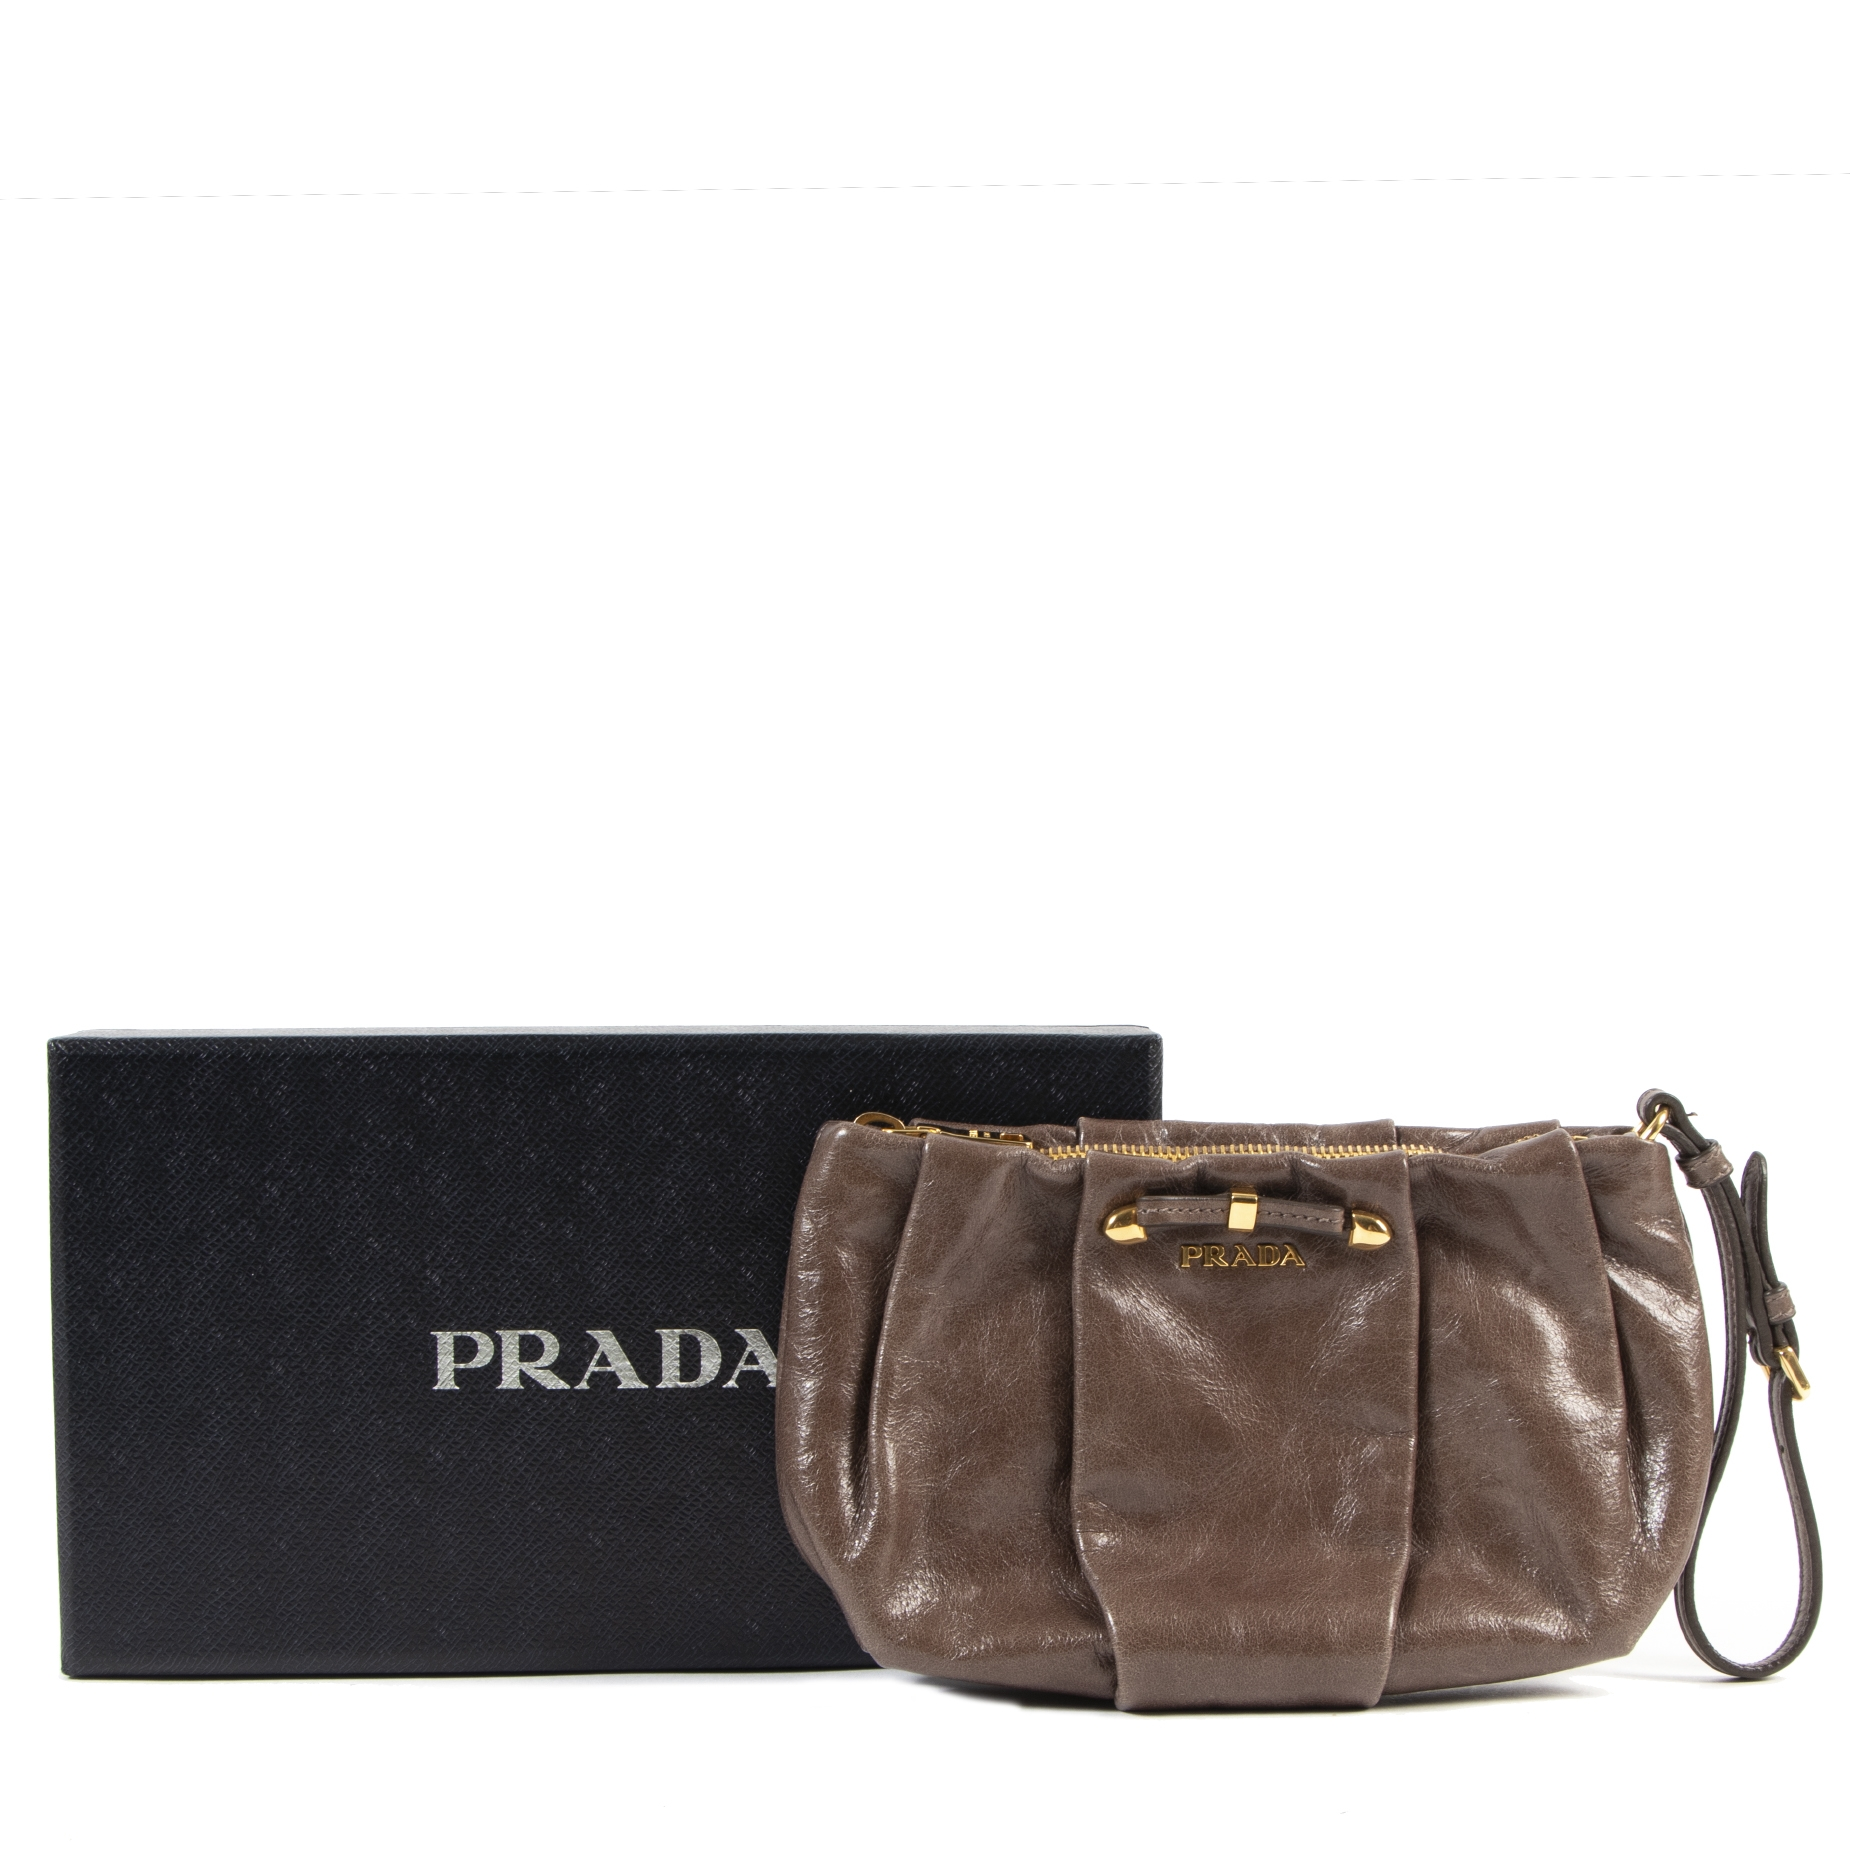 Prada Taupe Brown Patent Clutch Bag for the best price at Labellov